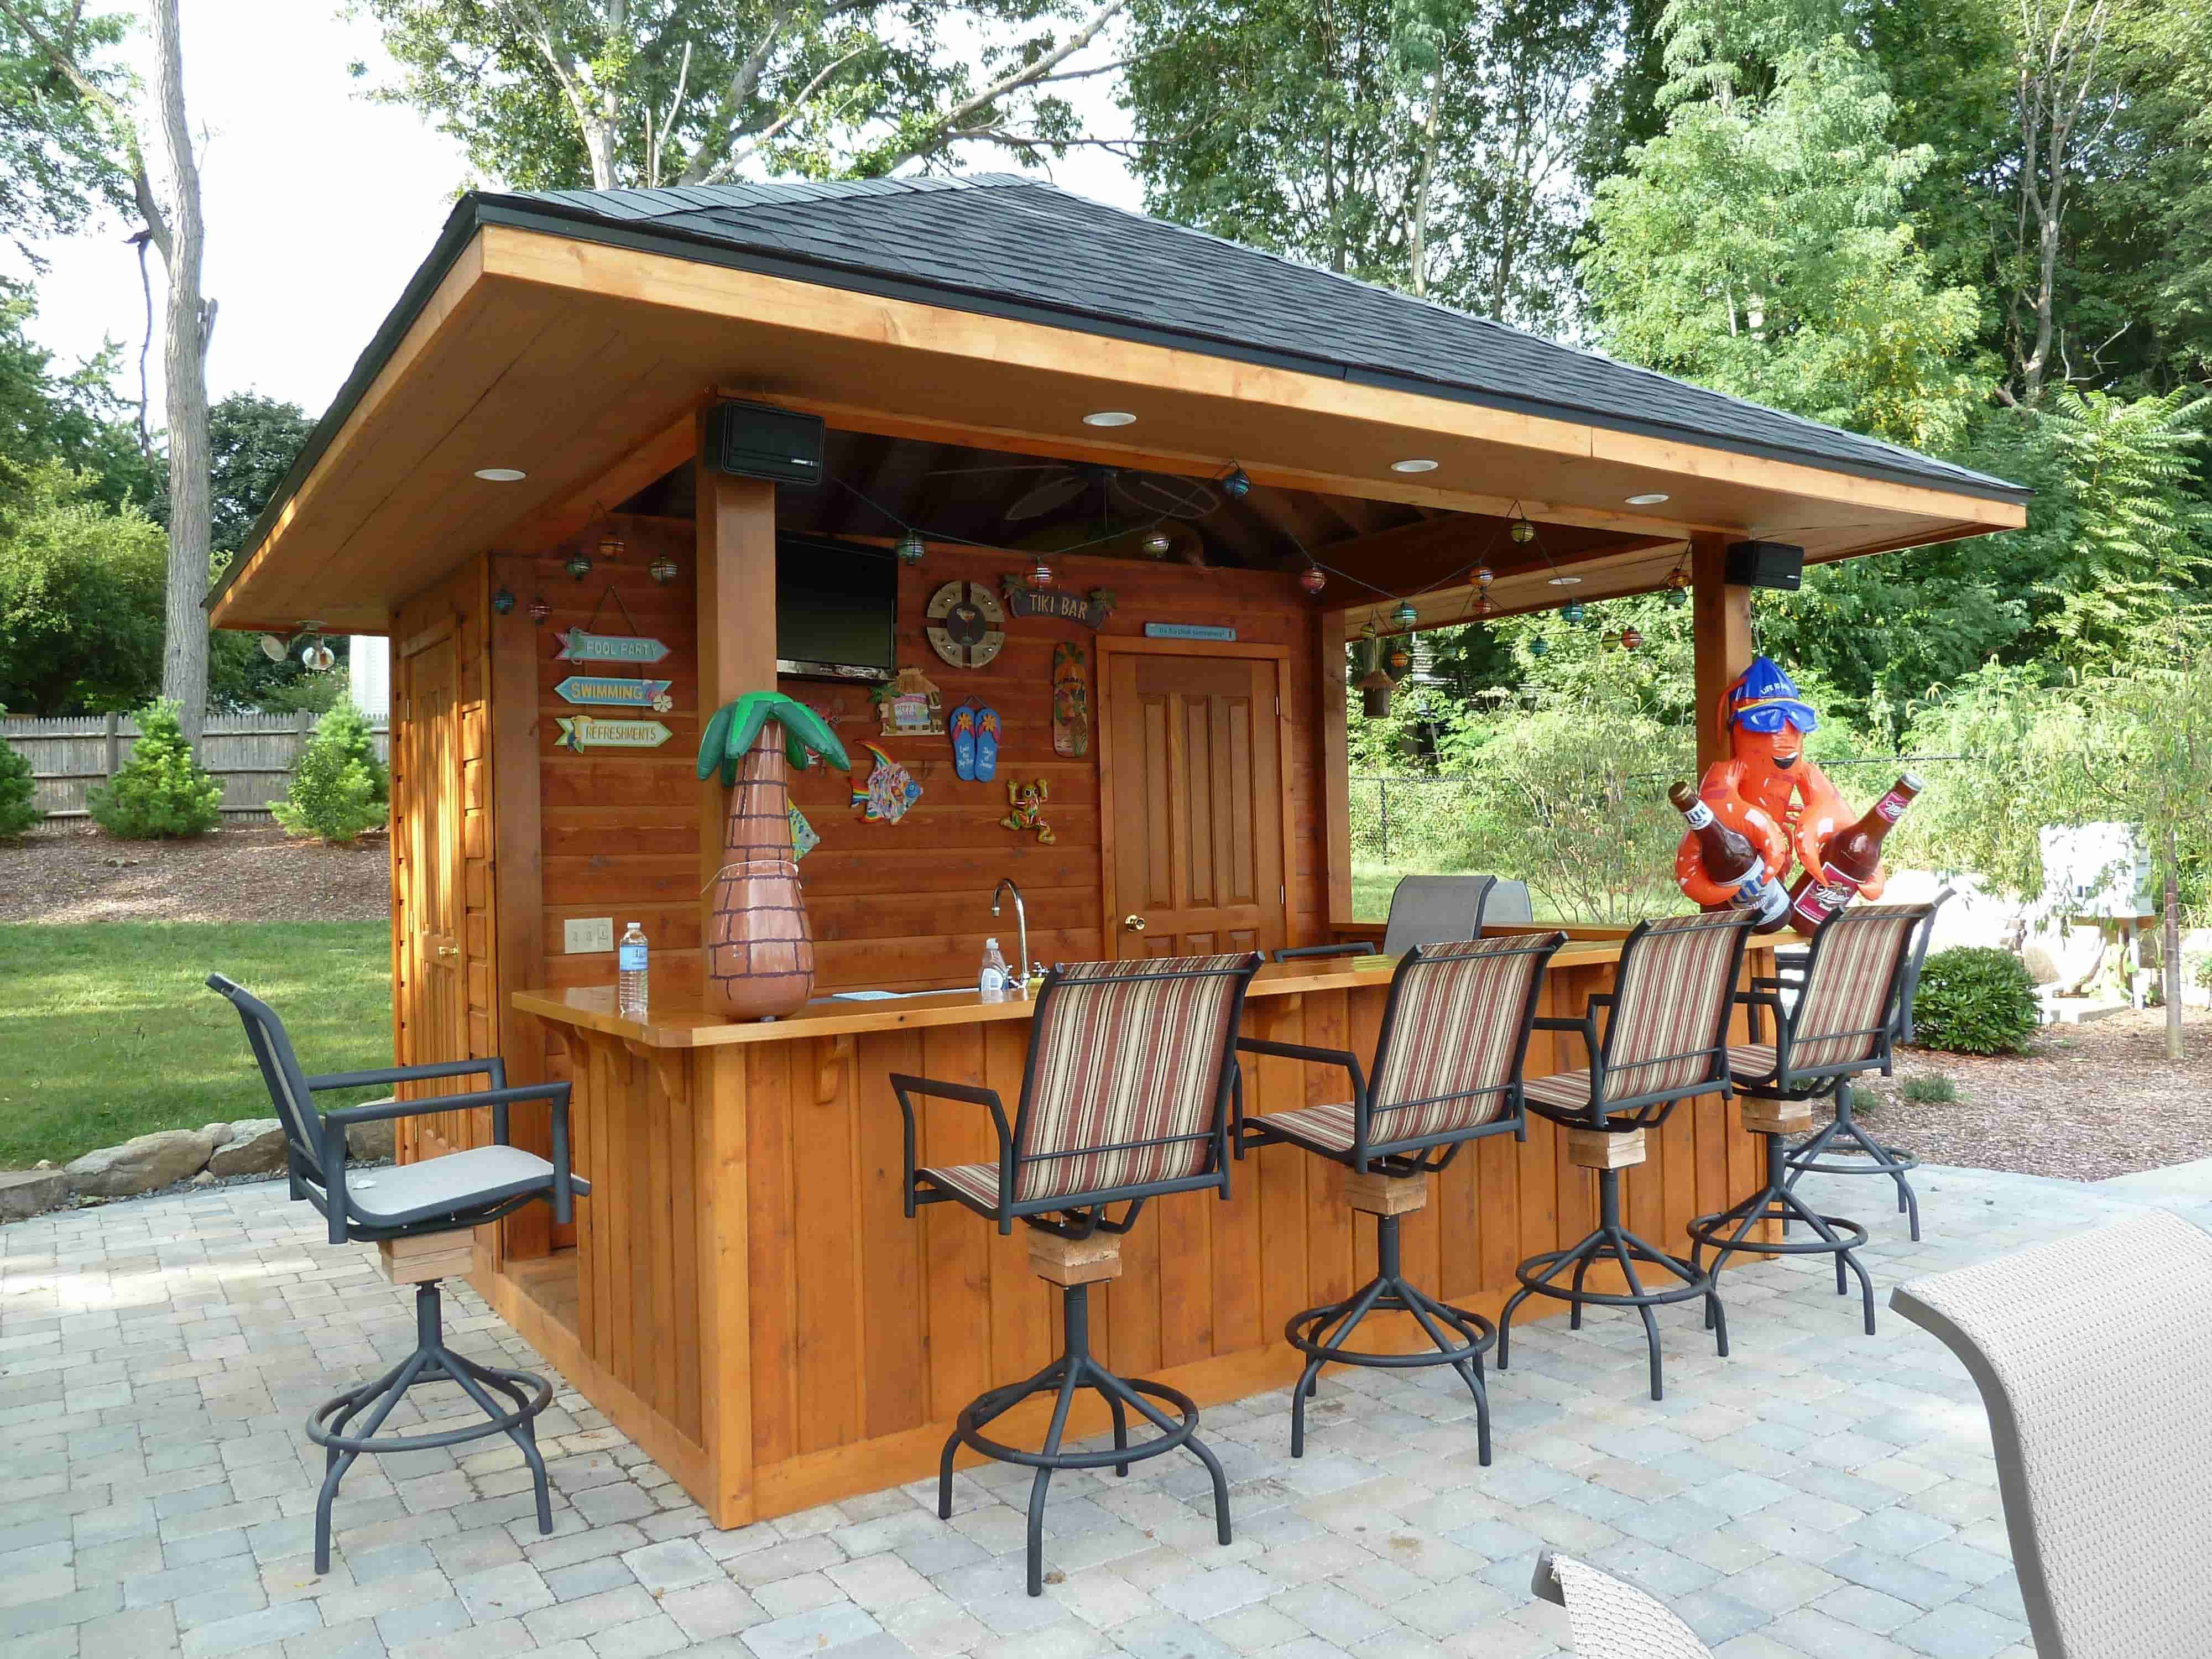 ... Garden Design With Out Door Yard Shed Bars  /NEWWesternBackyardOutdoorCabana With Designing A Garden From Pinterest